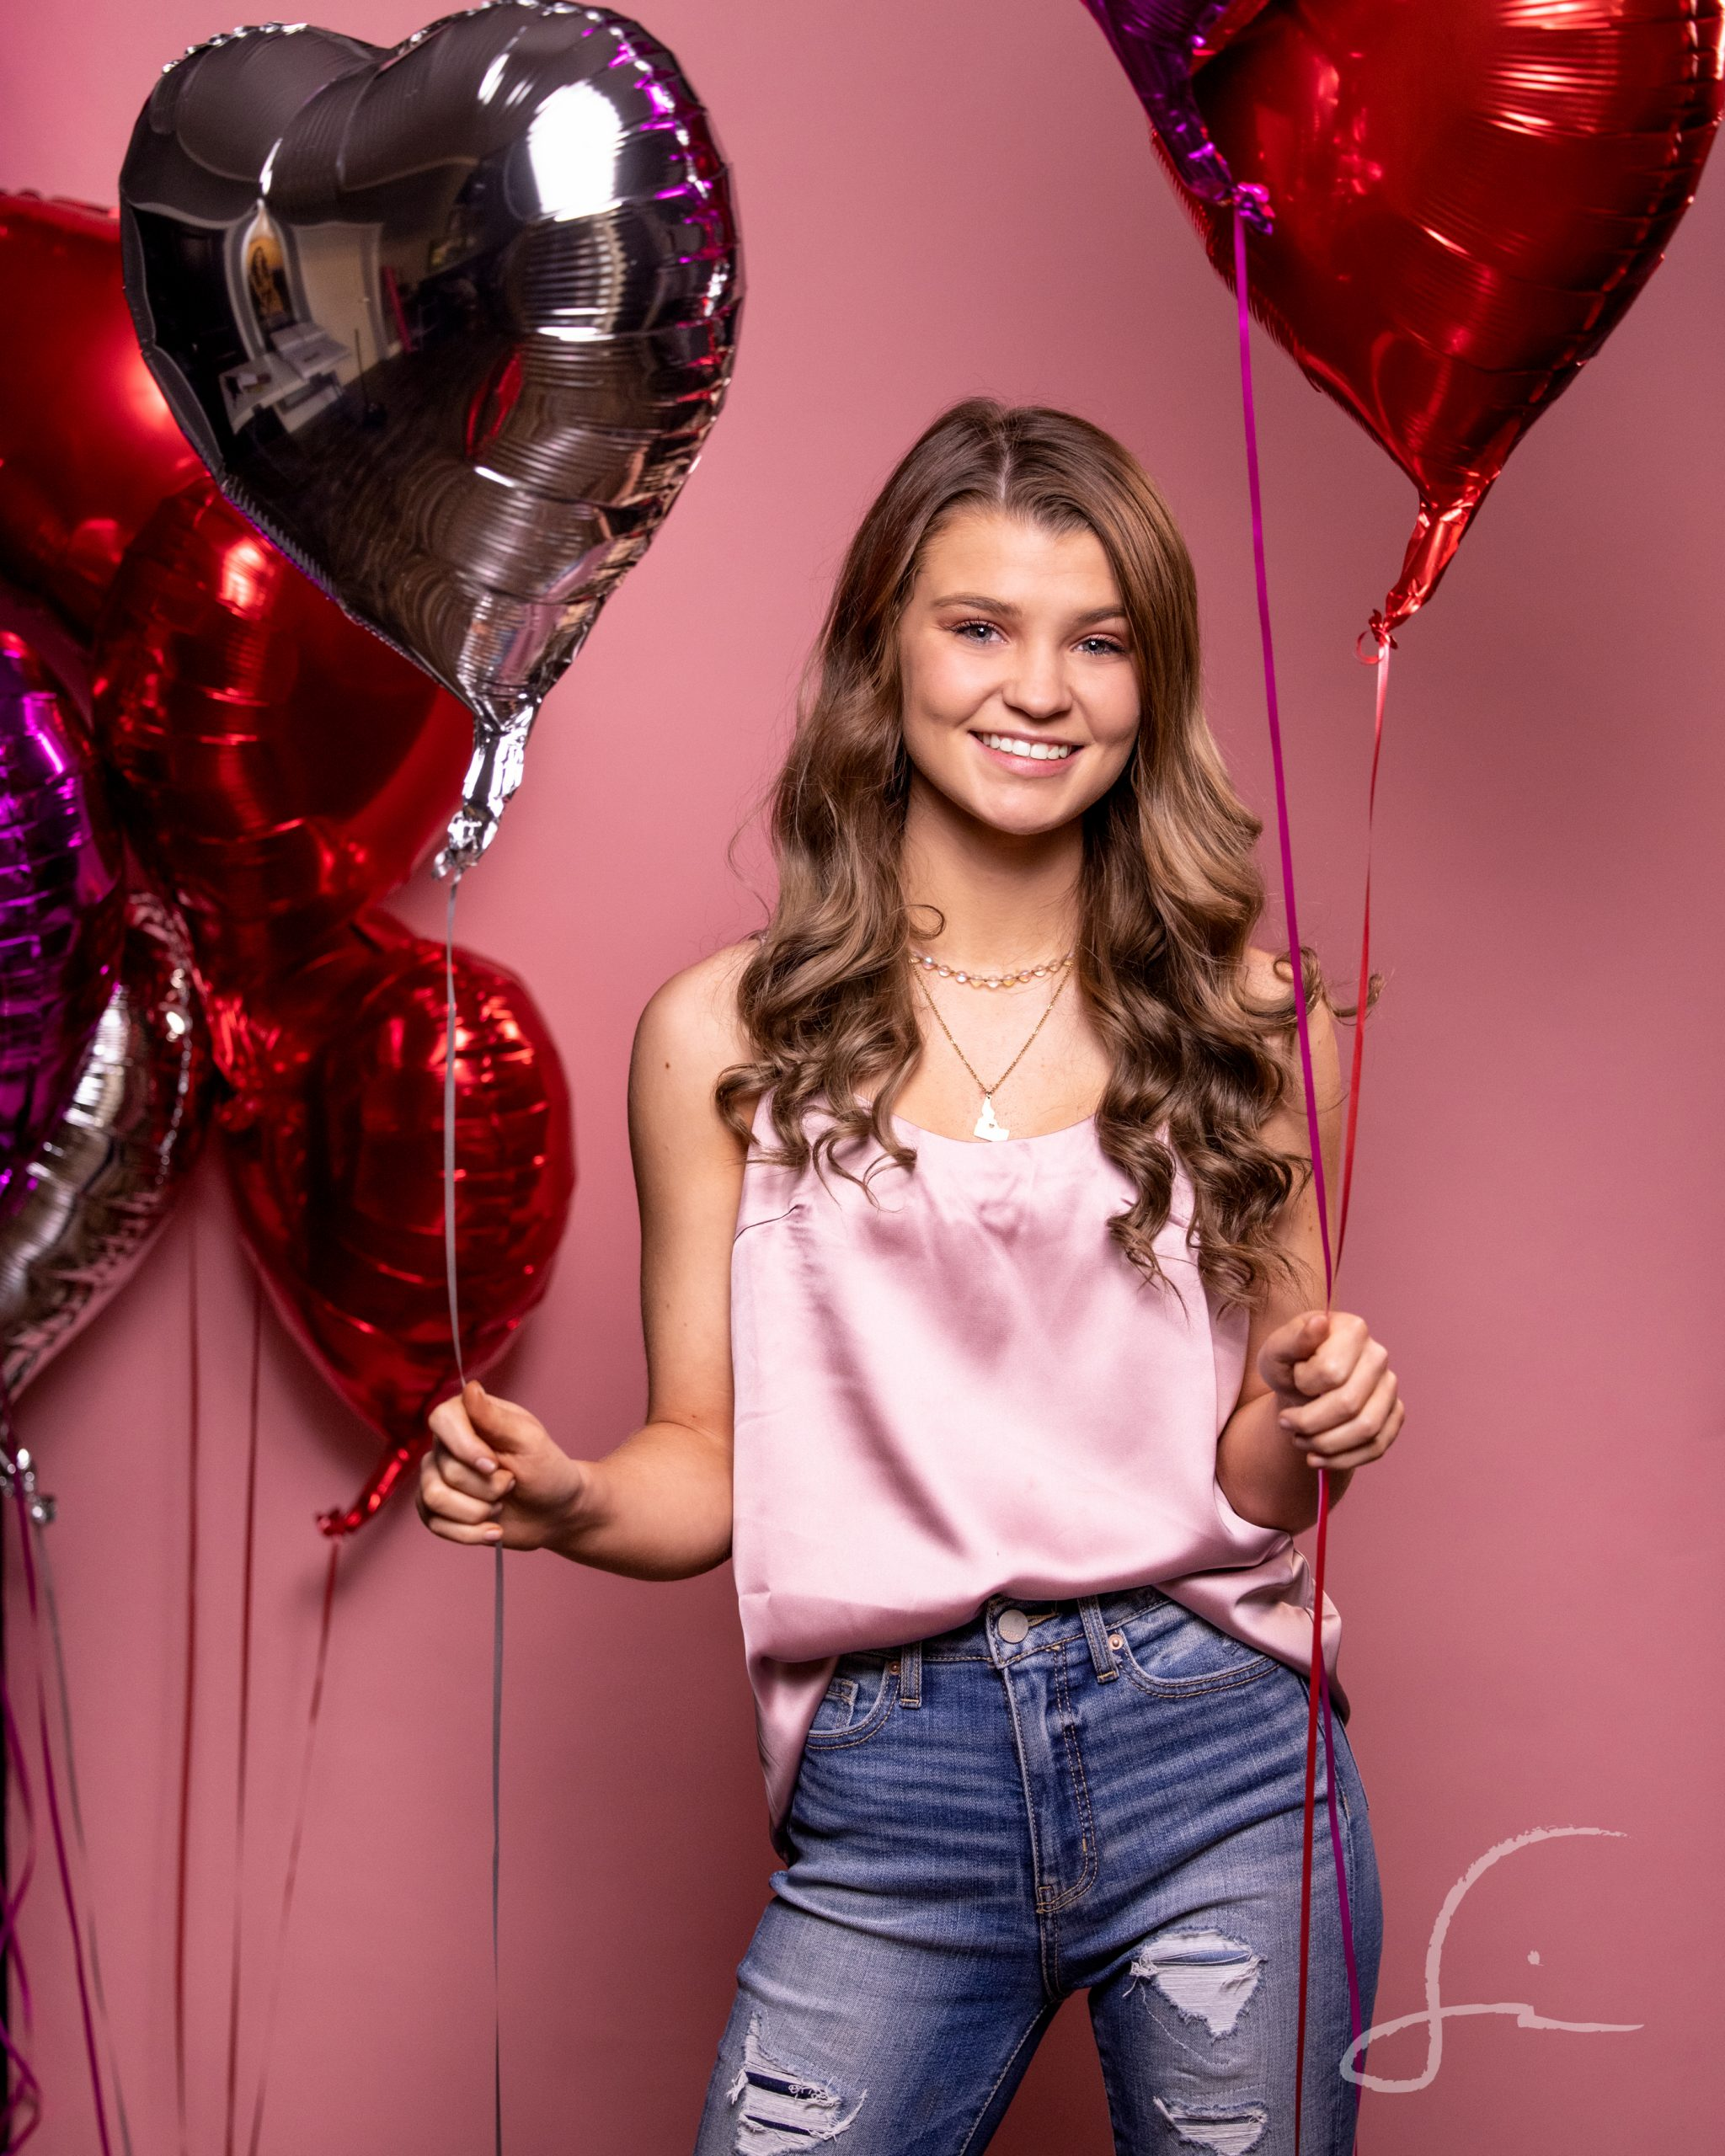 high school senior girl holding heart shaped balloons on a pink backdrop